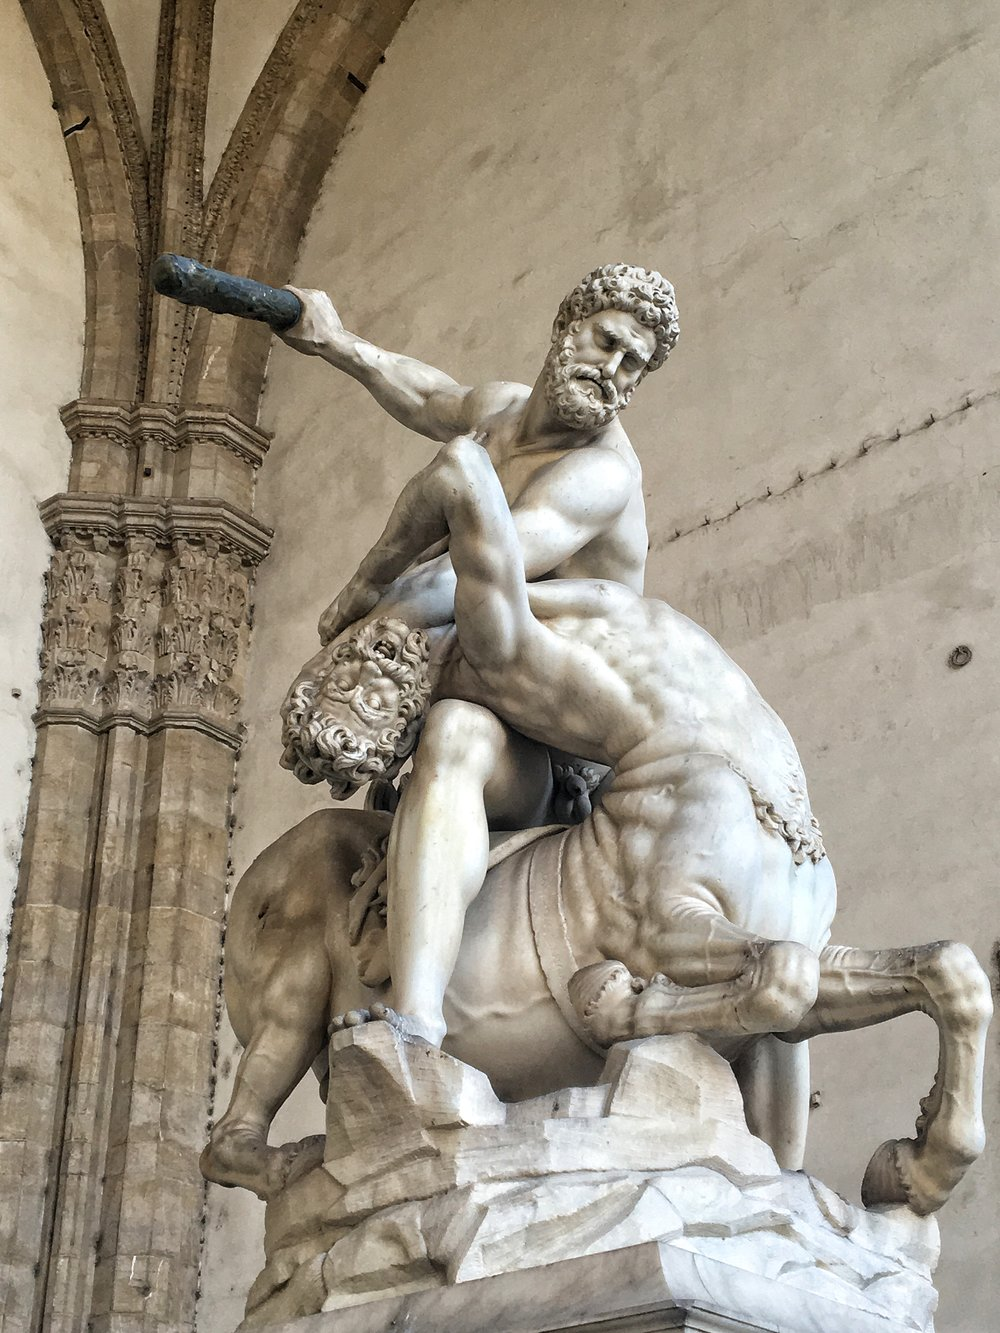 One of my favorite sculptures in Florence - Hercules and the Centaur Nessus (1599). Check out that detail.